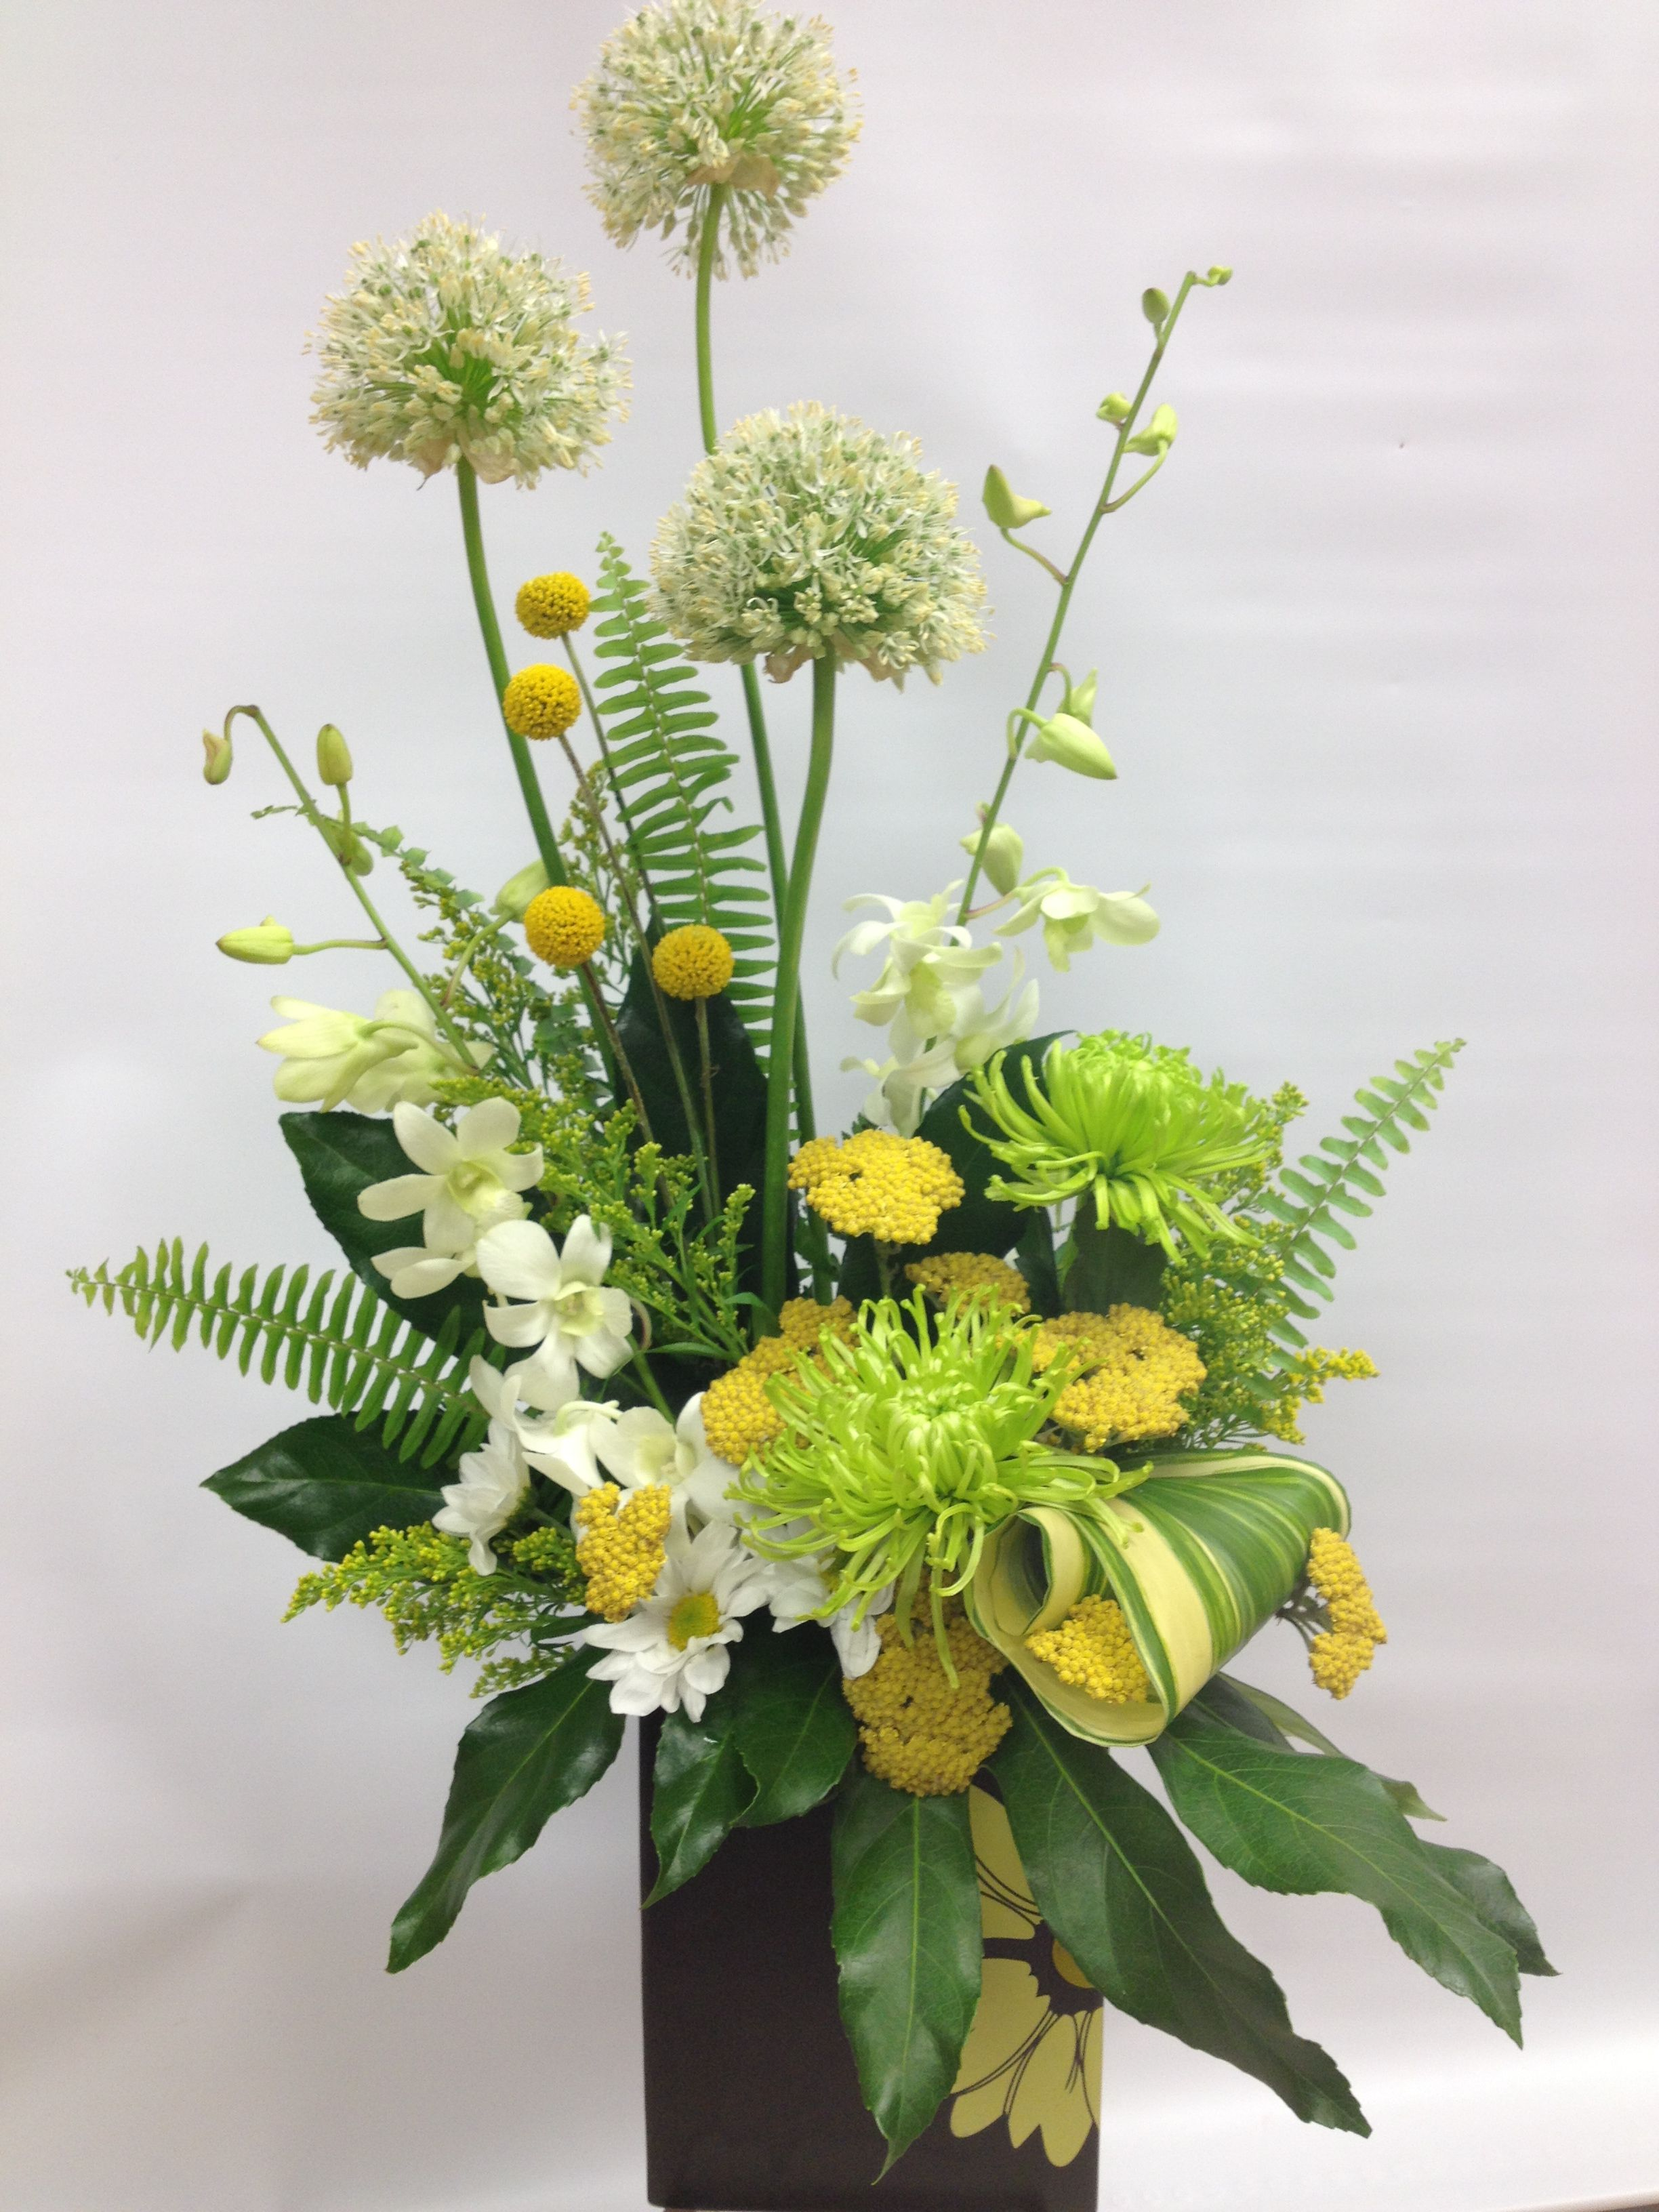 A beautiful asymmetrical arrangement in green white and yellow a beautiful asymmetrical arrangement in green white and yellow created by one of our designers izmirmasajfo